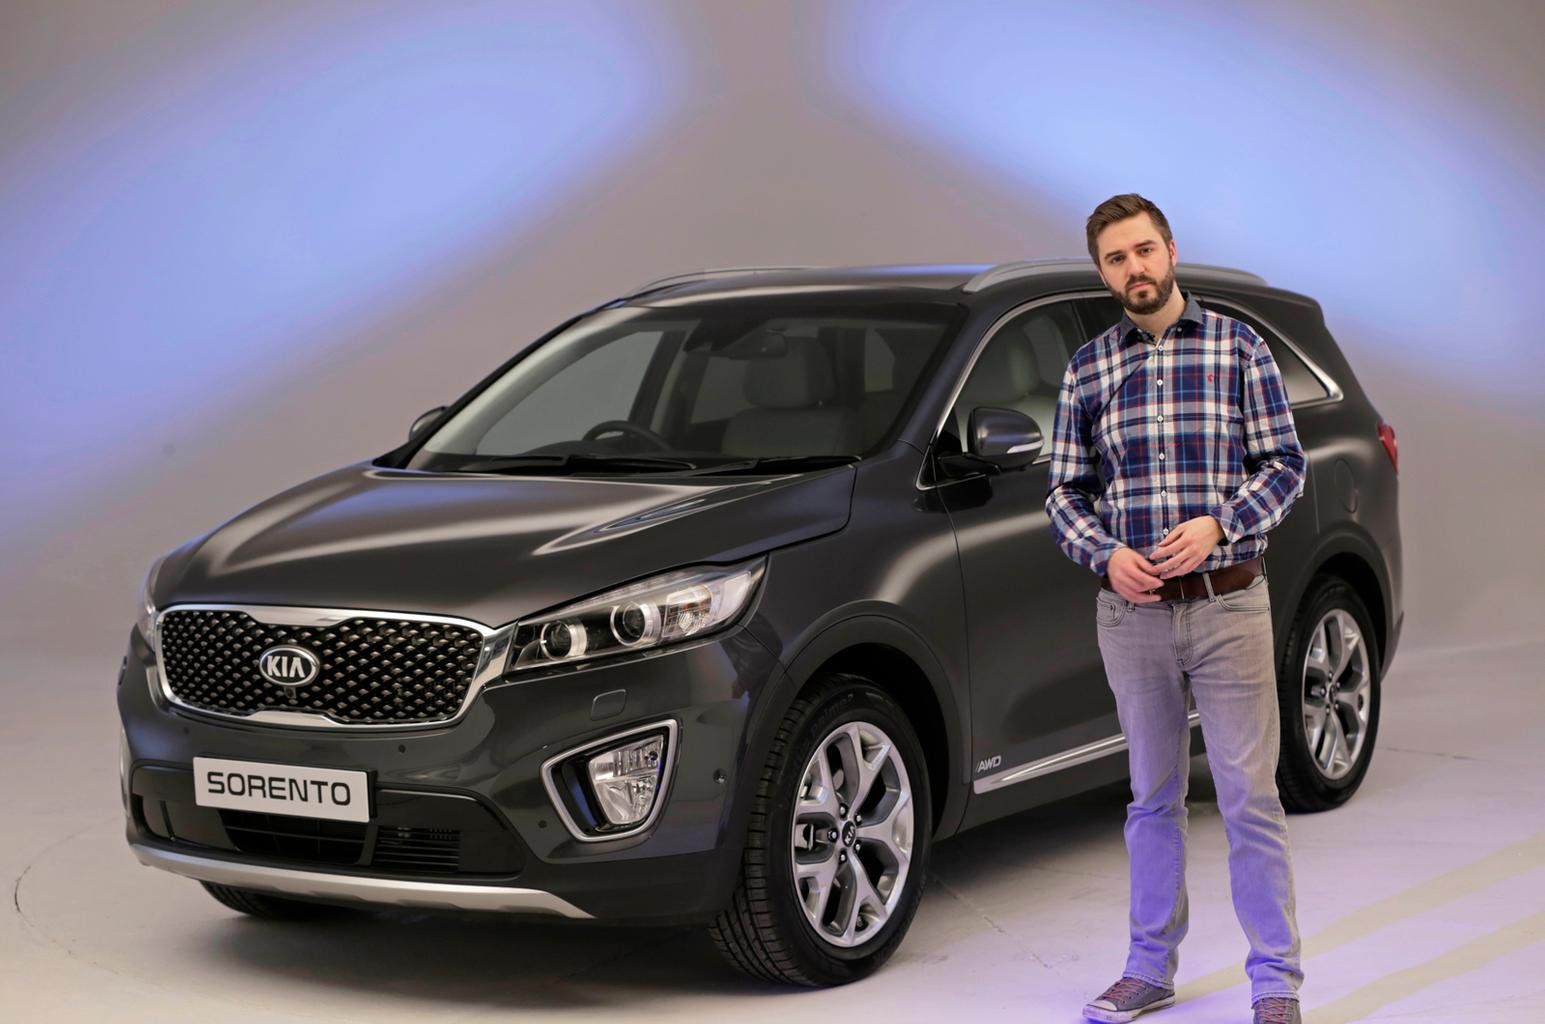 2015 Kia Sorento reader review